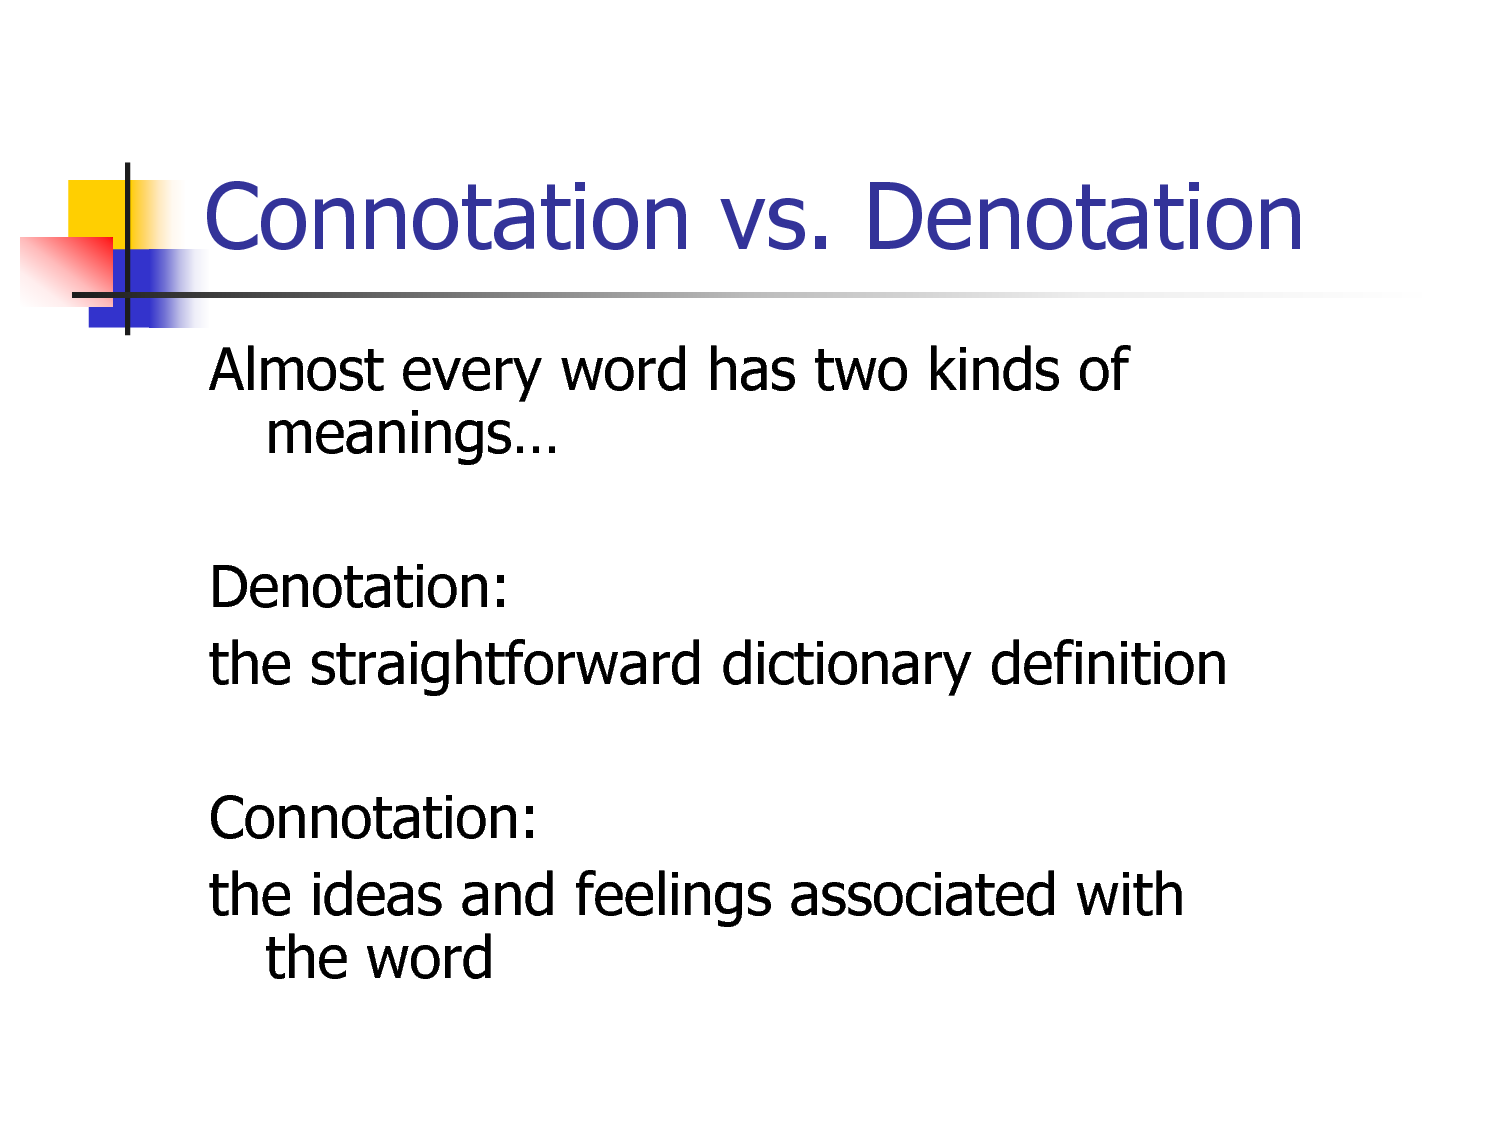 connotative meaning denotative meaning Significance of connotation in literature connotation plays a role in almost every type of communication, as it adds nuance and more subtle meaning.